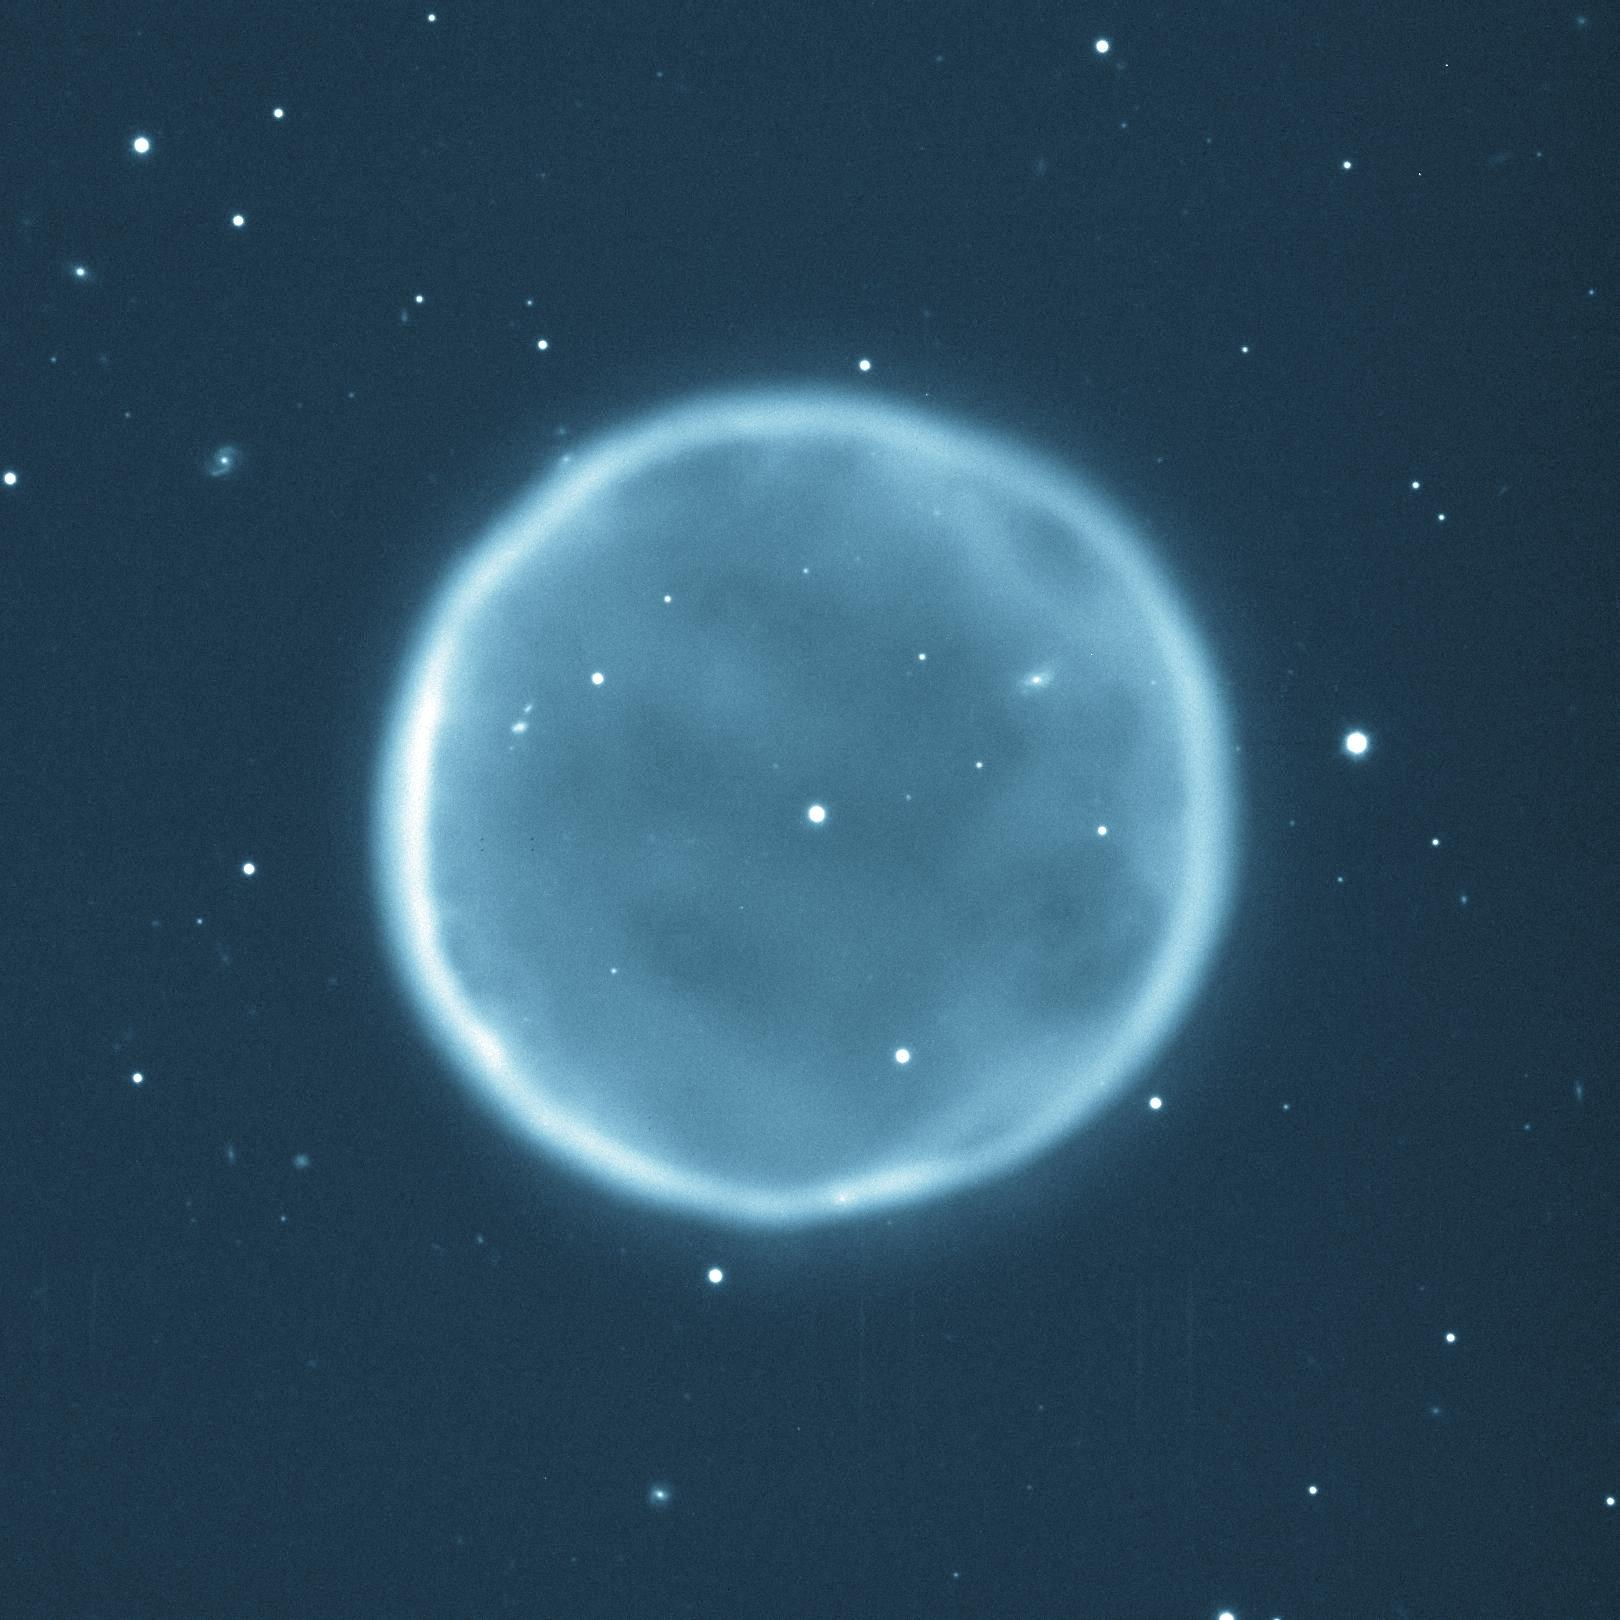 Sun to turn into planetary nebula when it dies: Astronomers